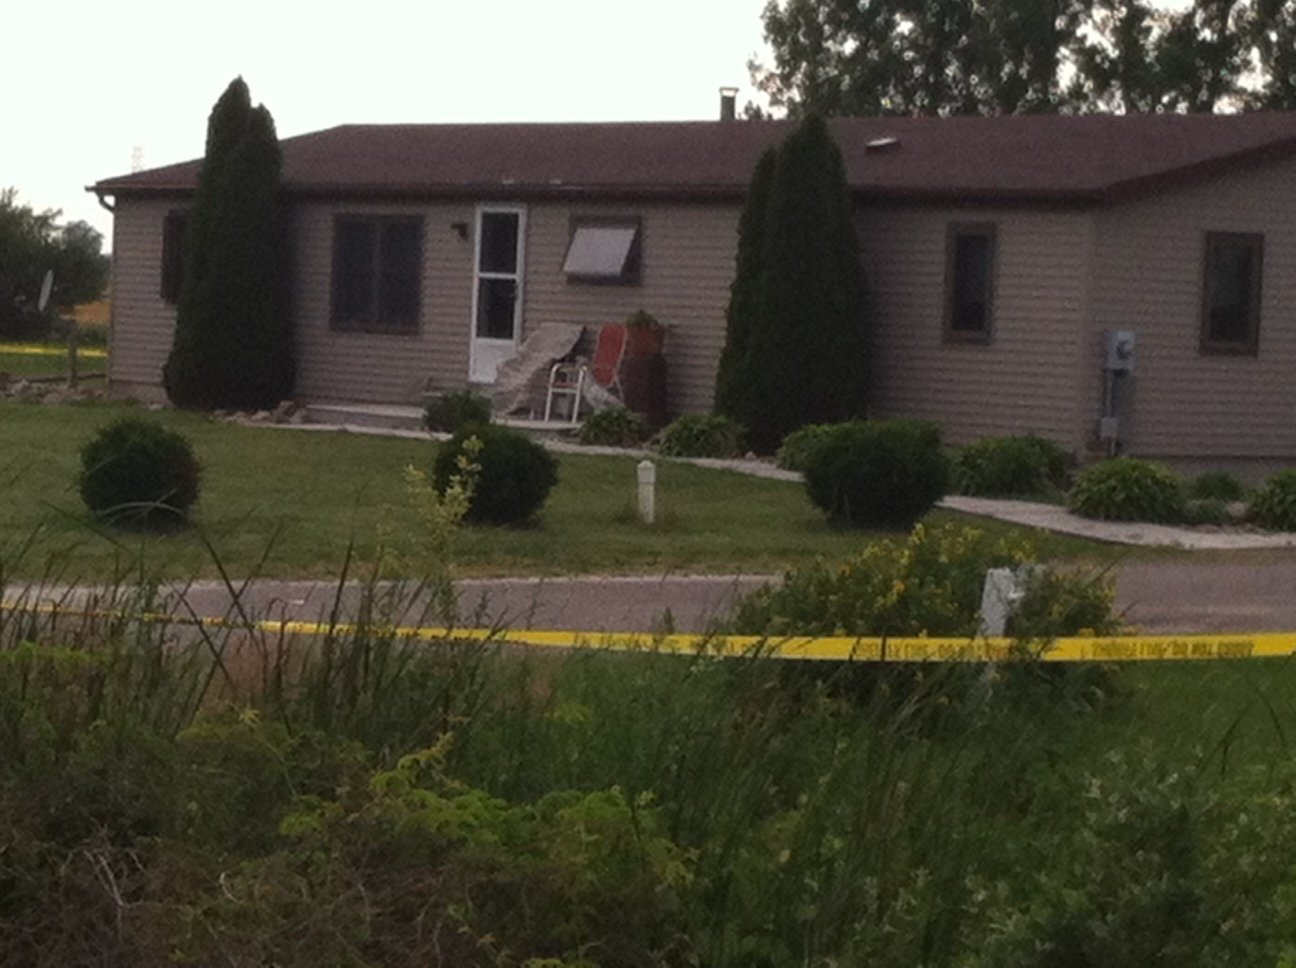 Photo from the Tuscola Co. crime scene.